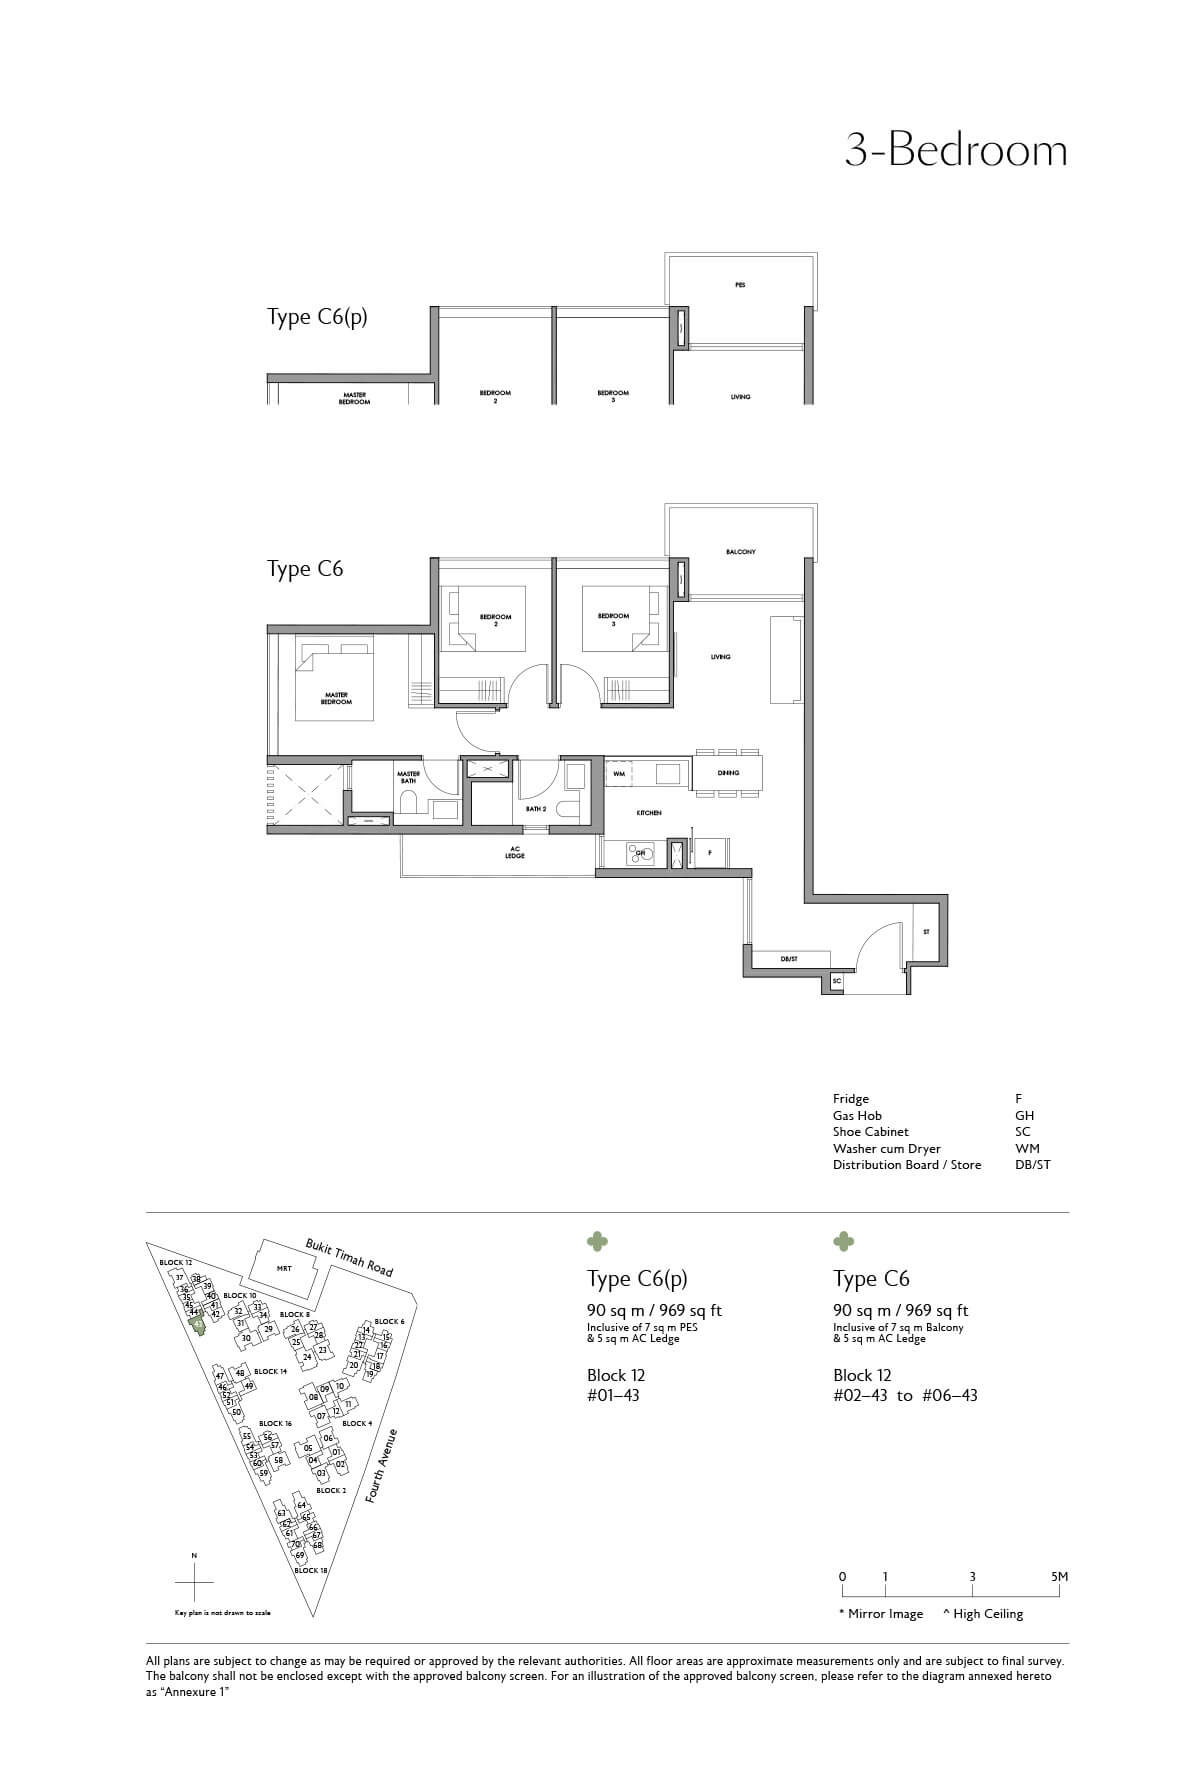 Fourth Avenue Residences Floor Plan 3 Bedroom Type C6